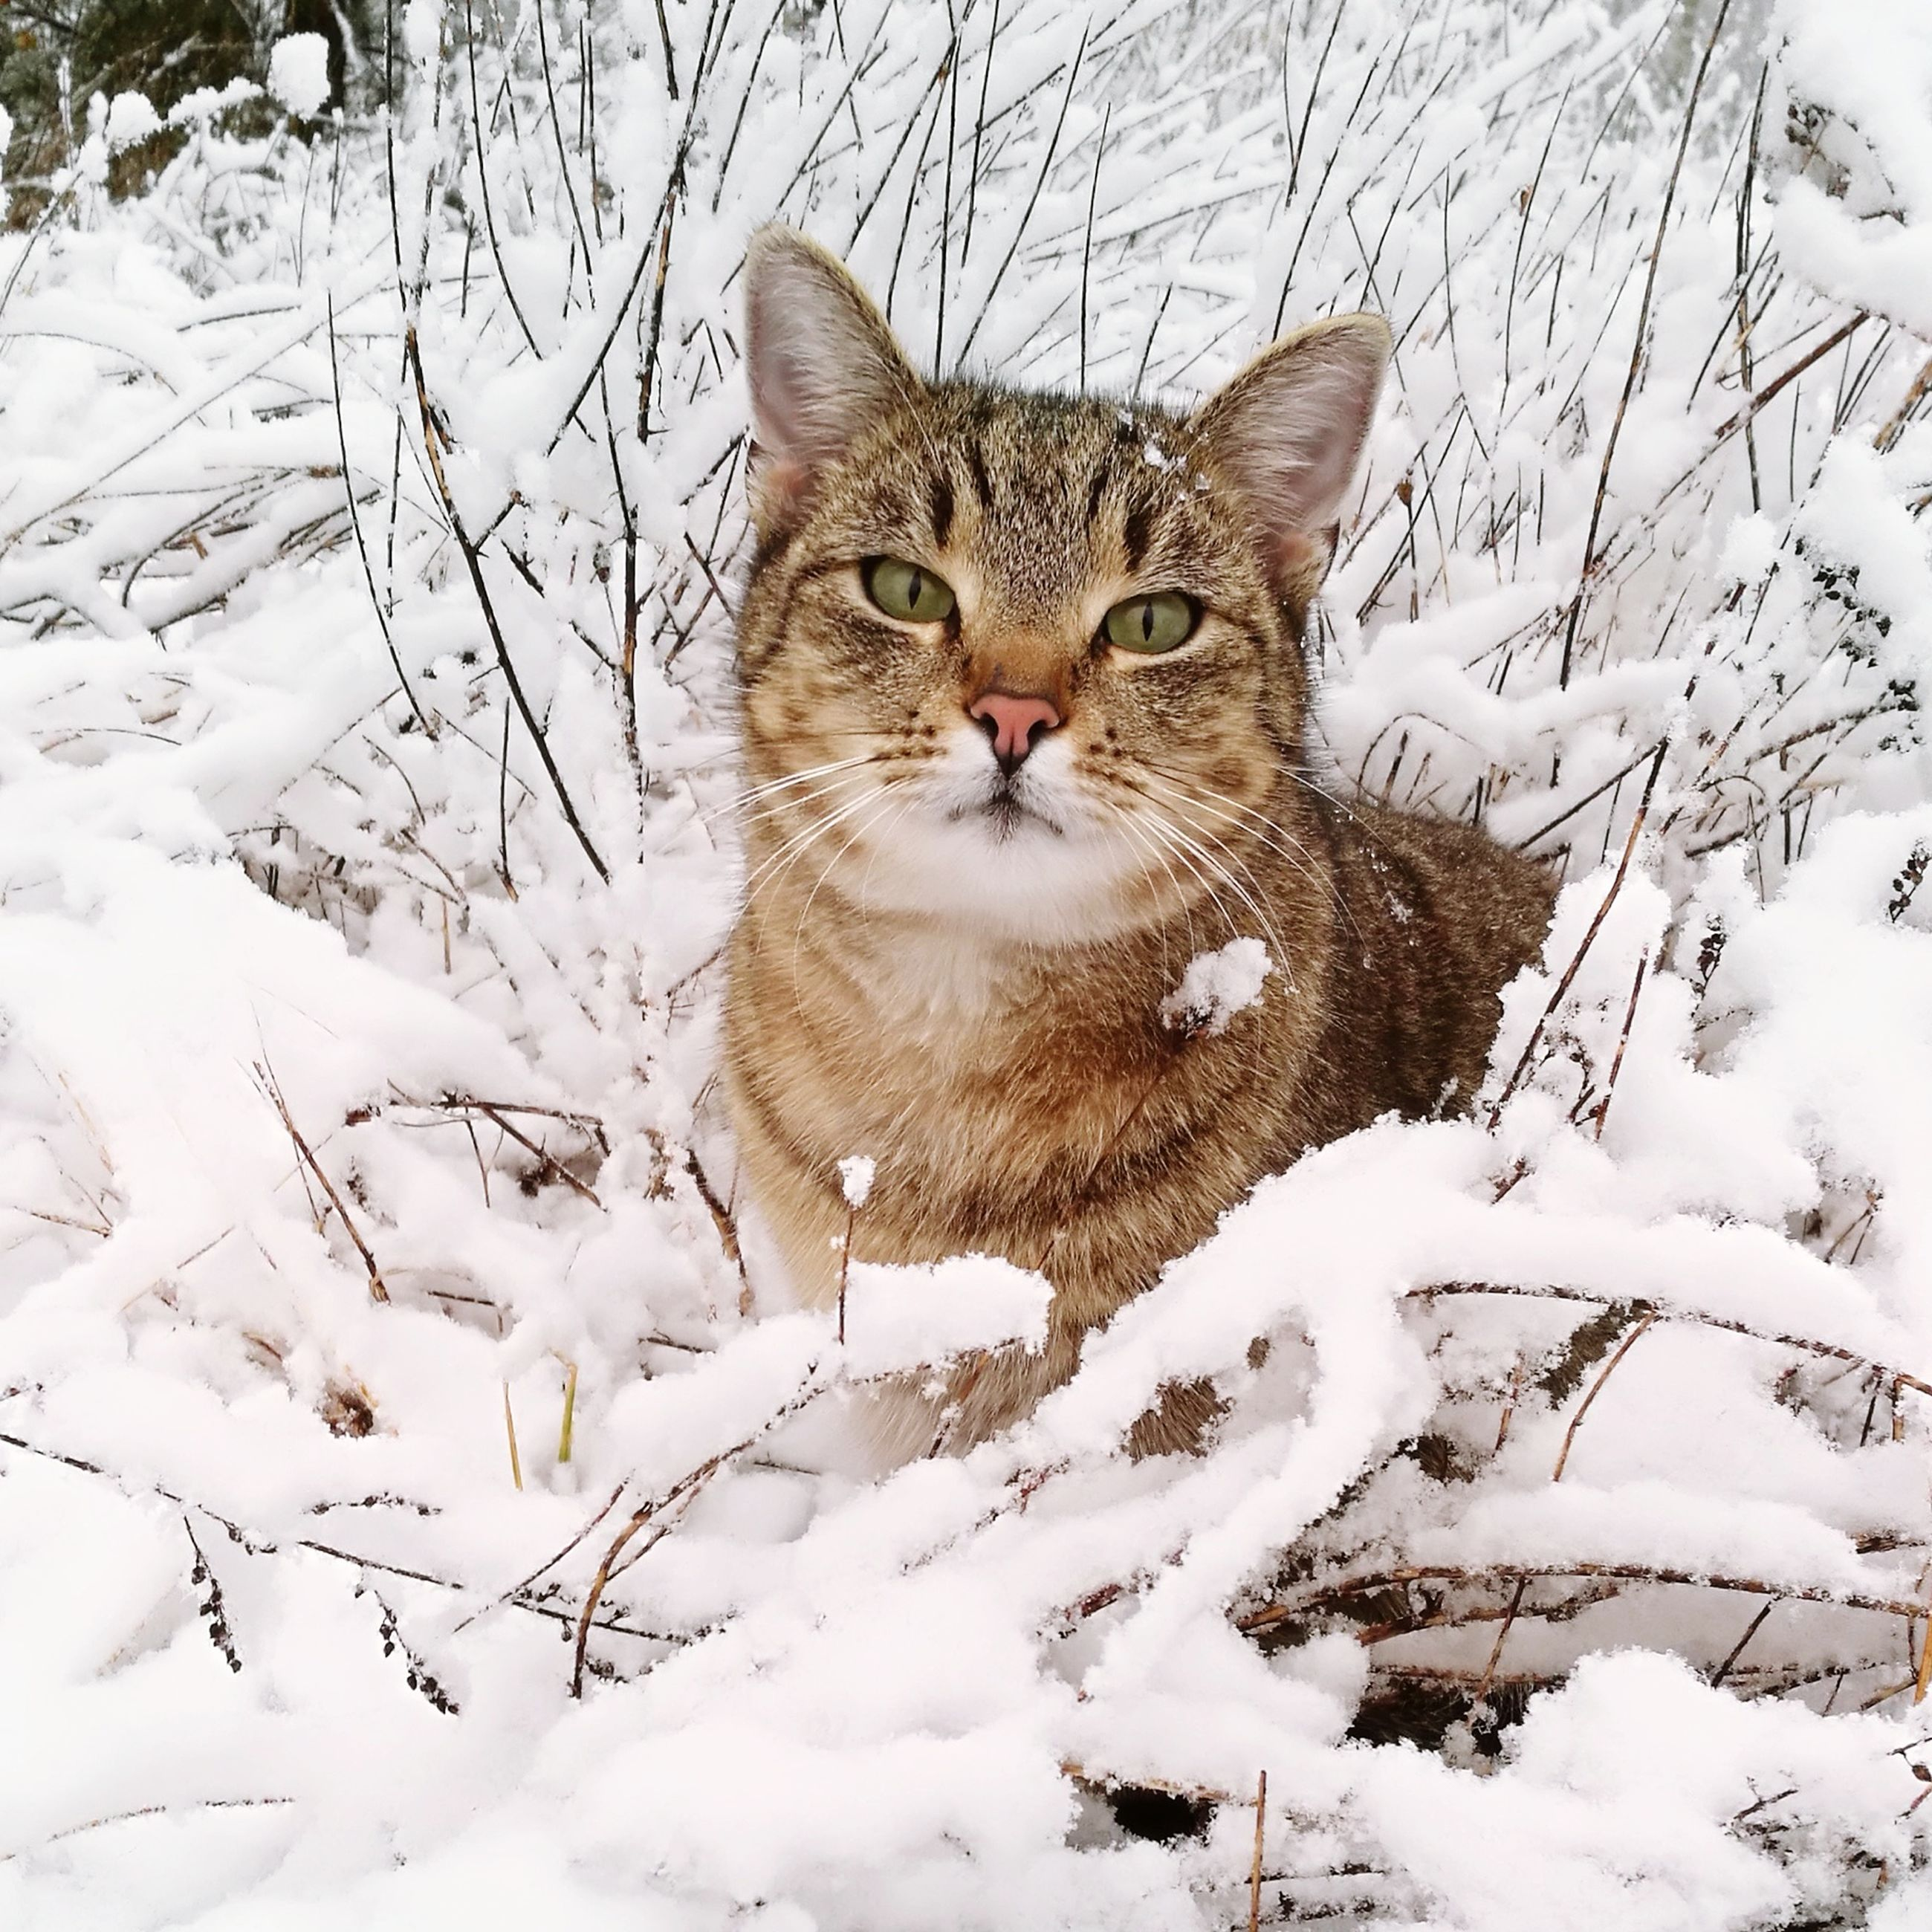 mammal, domestic animals, pets, domestic, animal, animal themes, snow, one animal, winter, cold temperature, cat, feline, domestic cat, vertebrate, portrait, field, looking at camera, land, day, no people, whisker